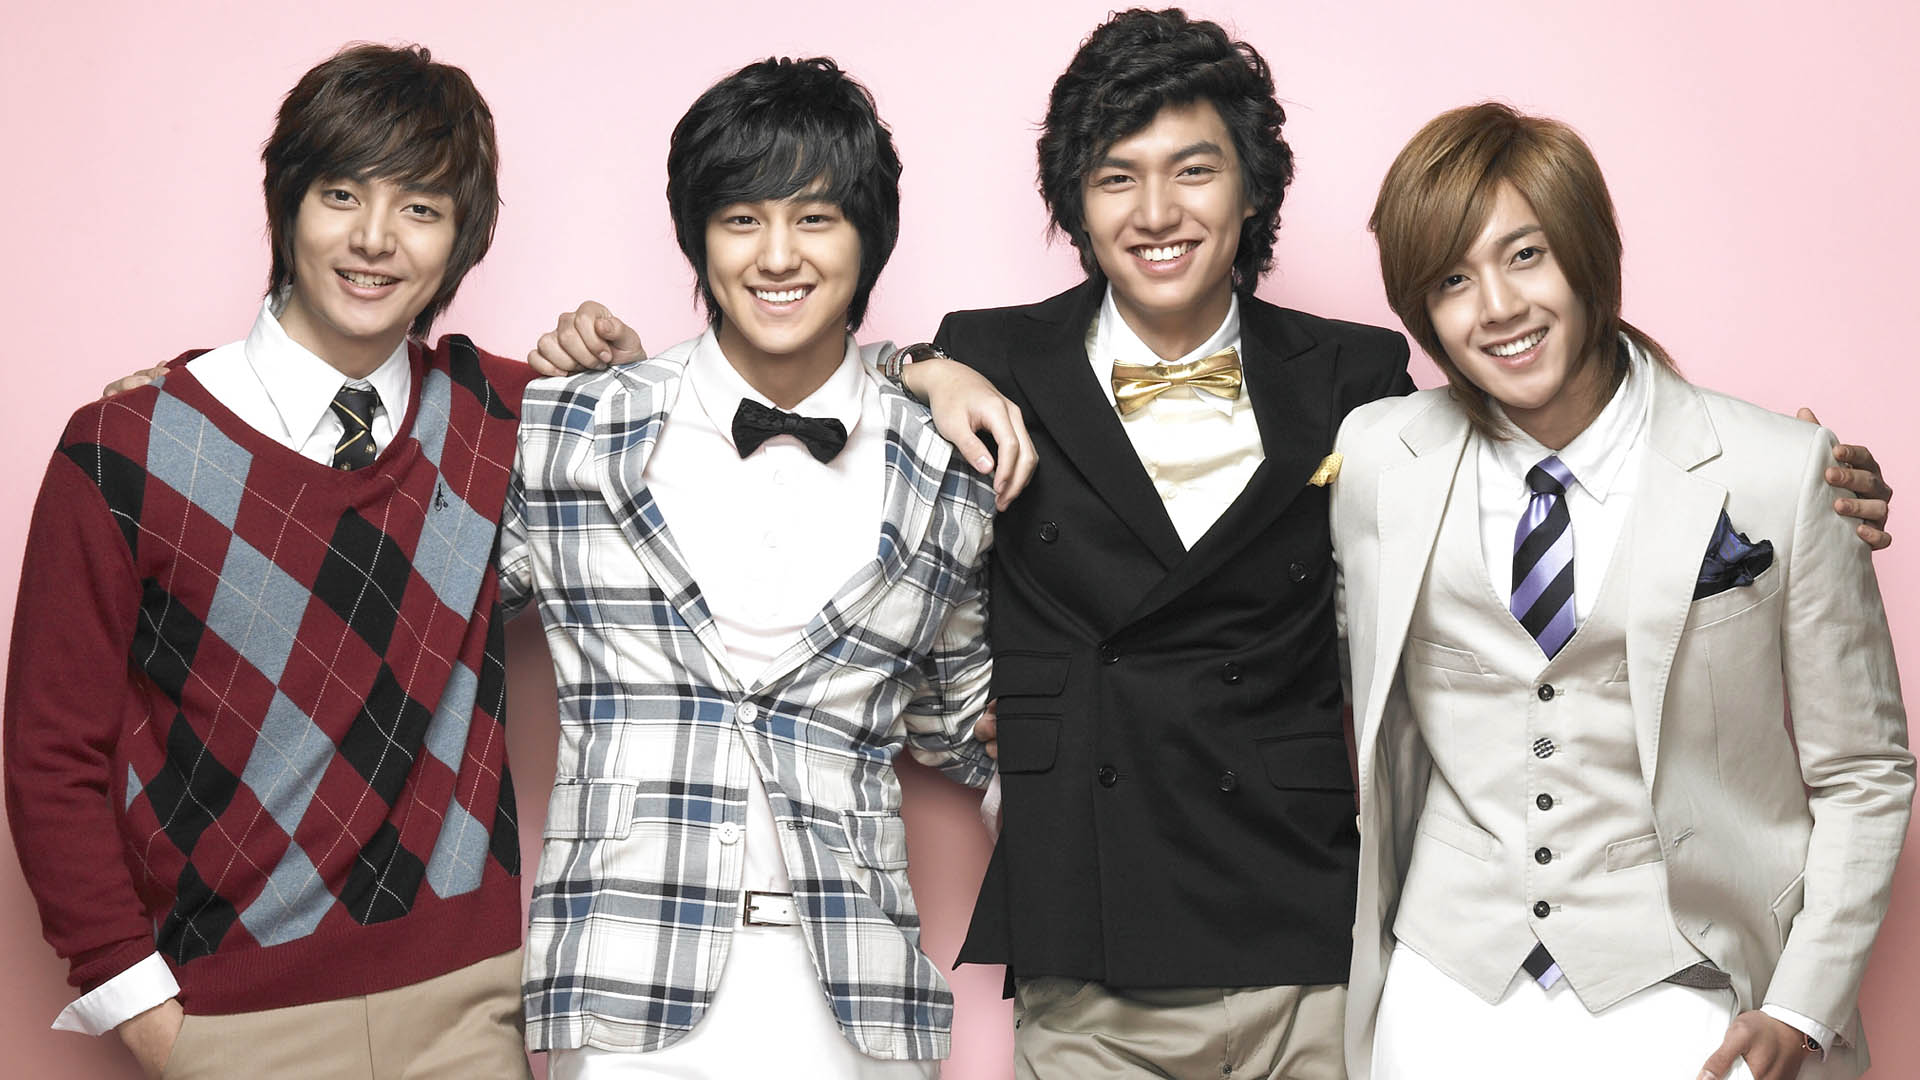 Boys over Flowers - Korean Dramas Wallpaper (32444321) - Fanpop ...boys over flowers